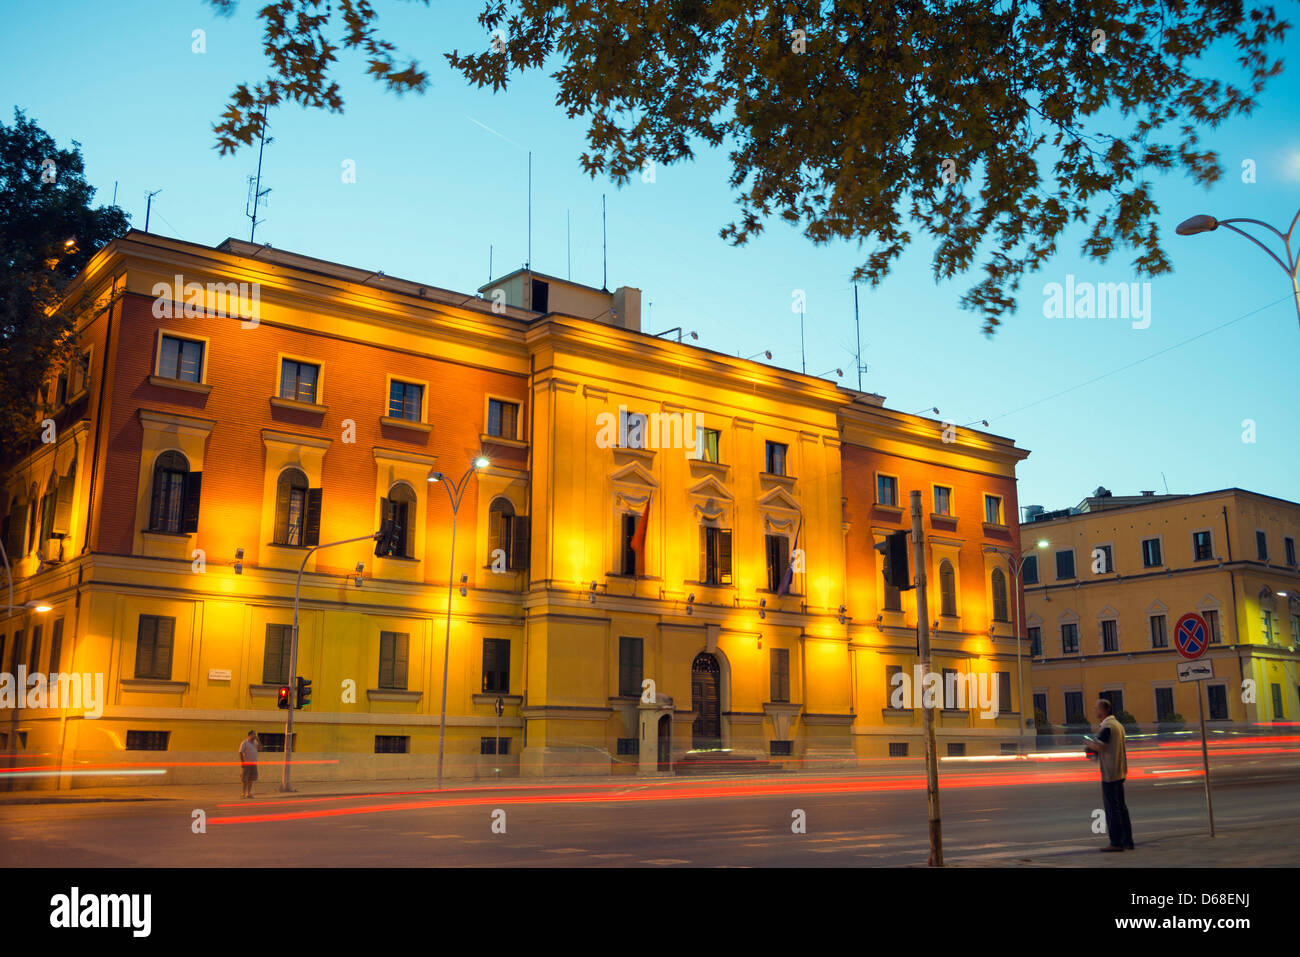 Europe, Albania, Tirana, city center - Stock Image